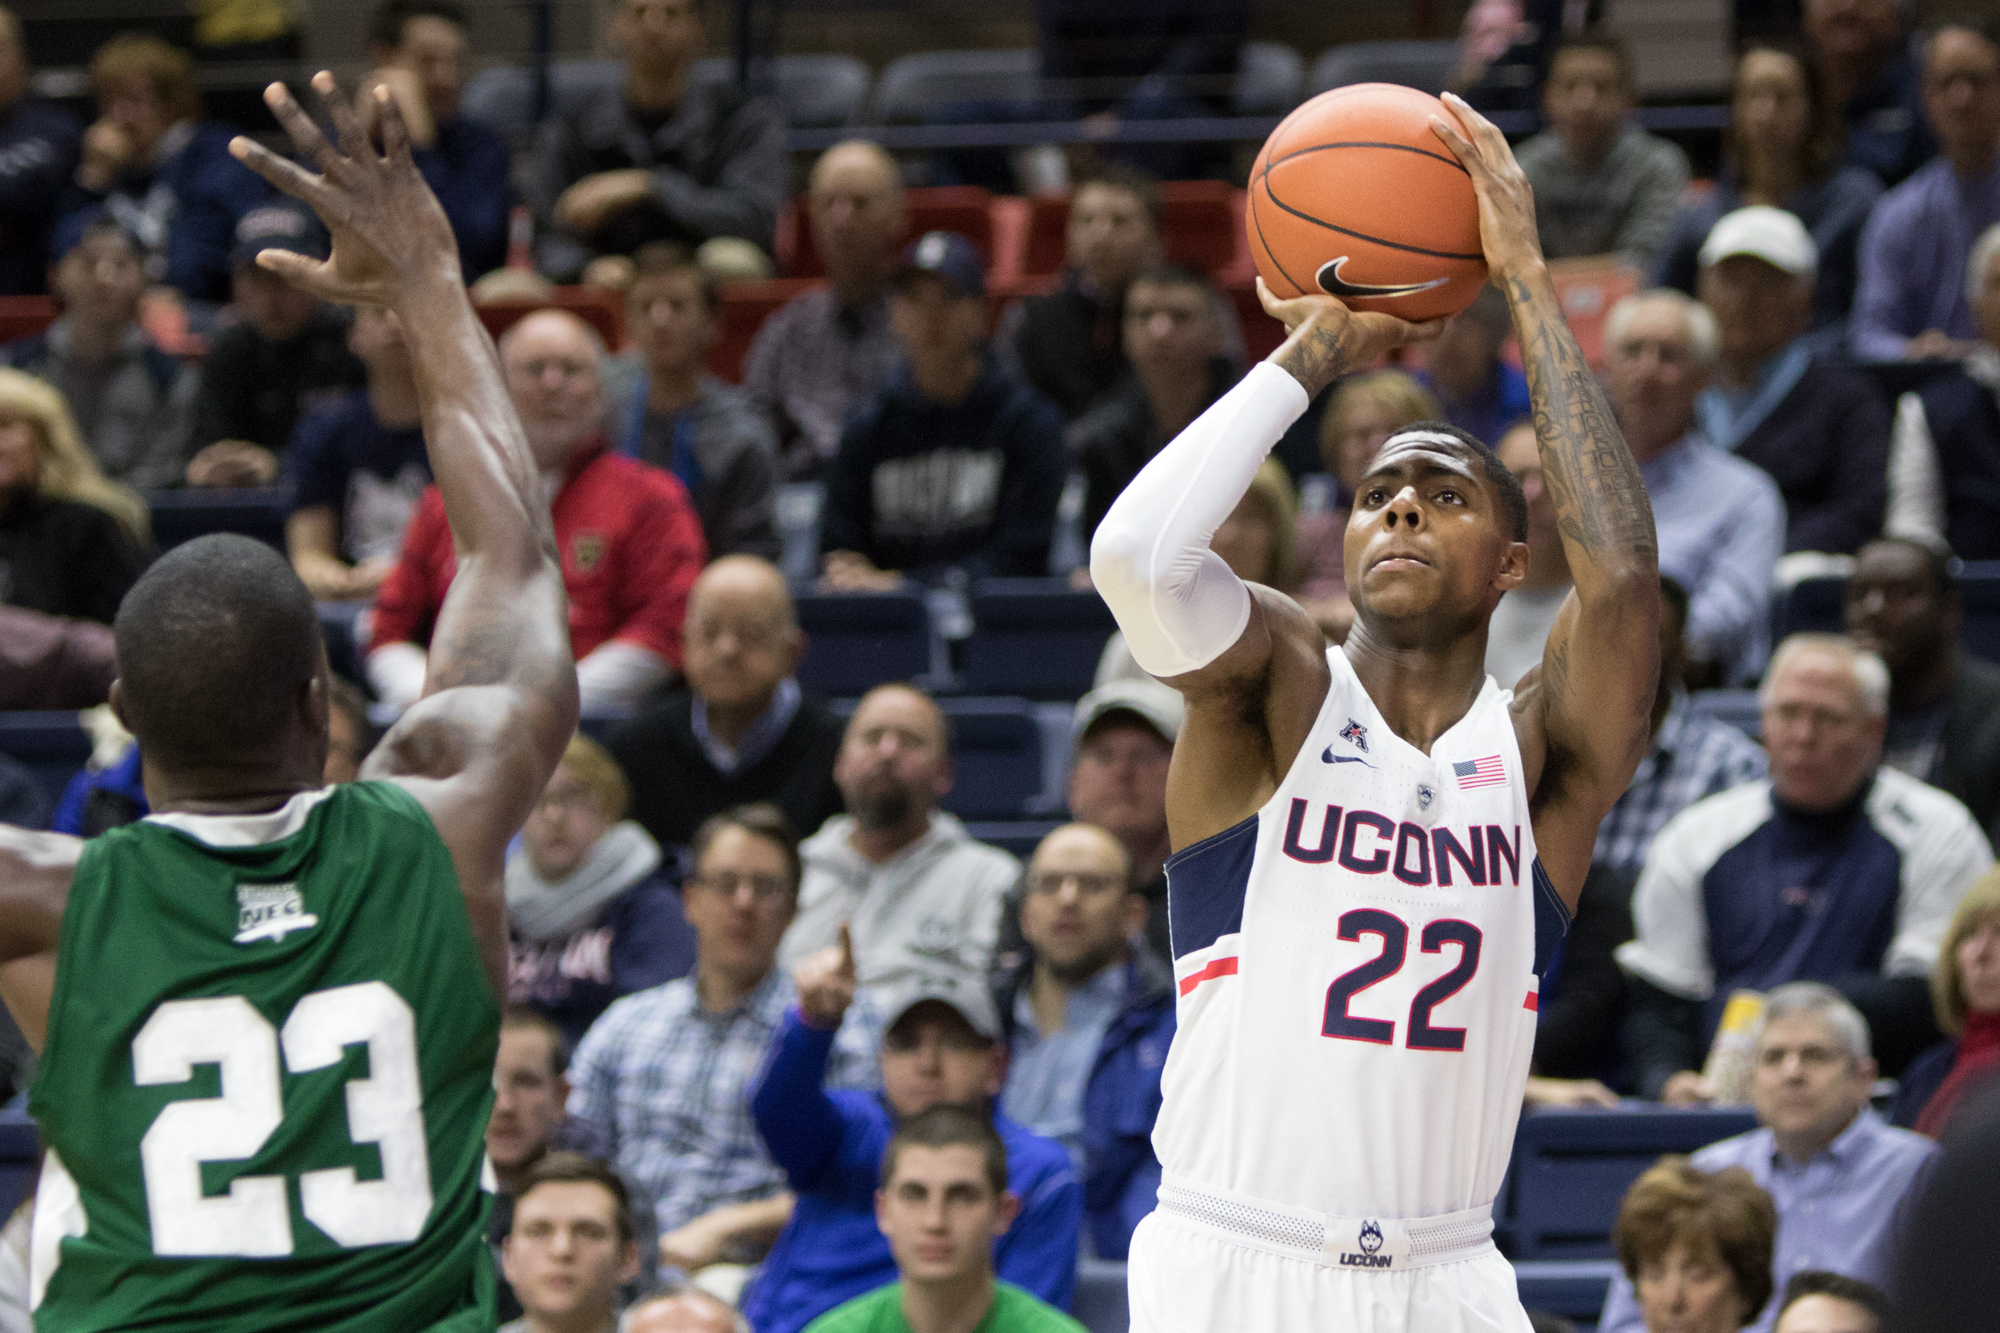 Redshirt sophomore Terry Larrier takes a shot during UConn's 67-58 loss on Friday, Nov. 11 at Gampel Pavilion. Larrier scored a team-high 19 points in his first game as a Husky. (Jackson Haigis/The Daily Campus)